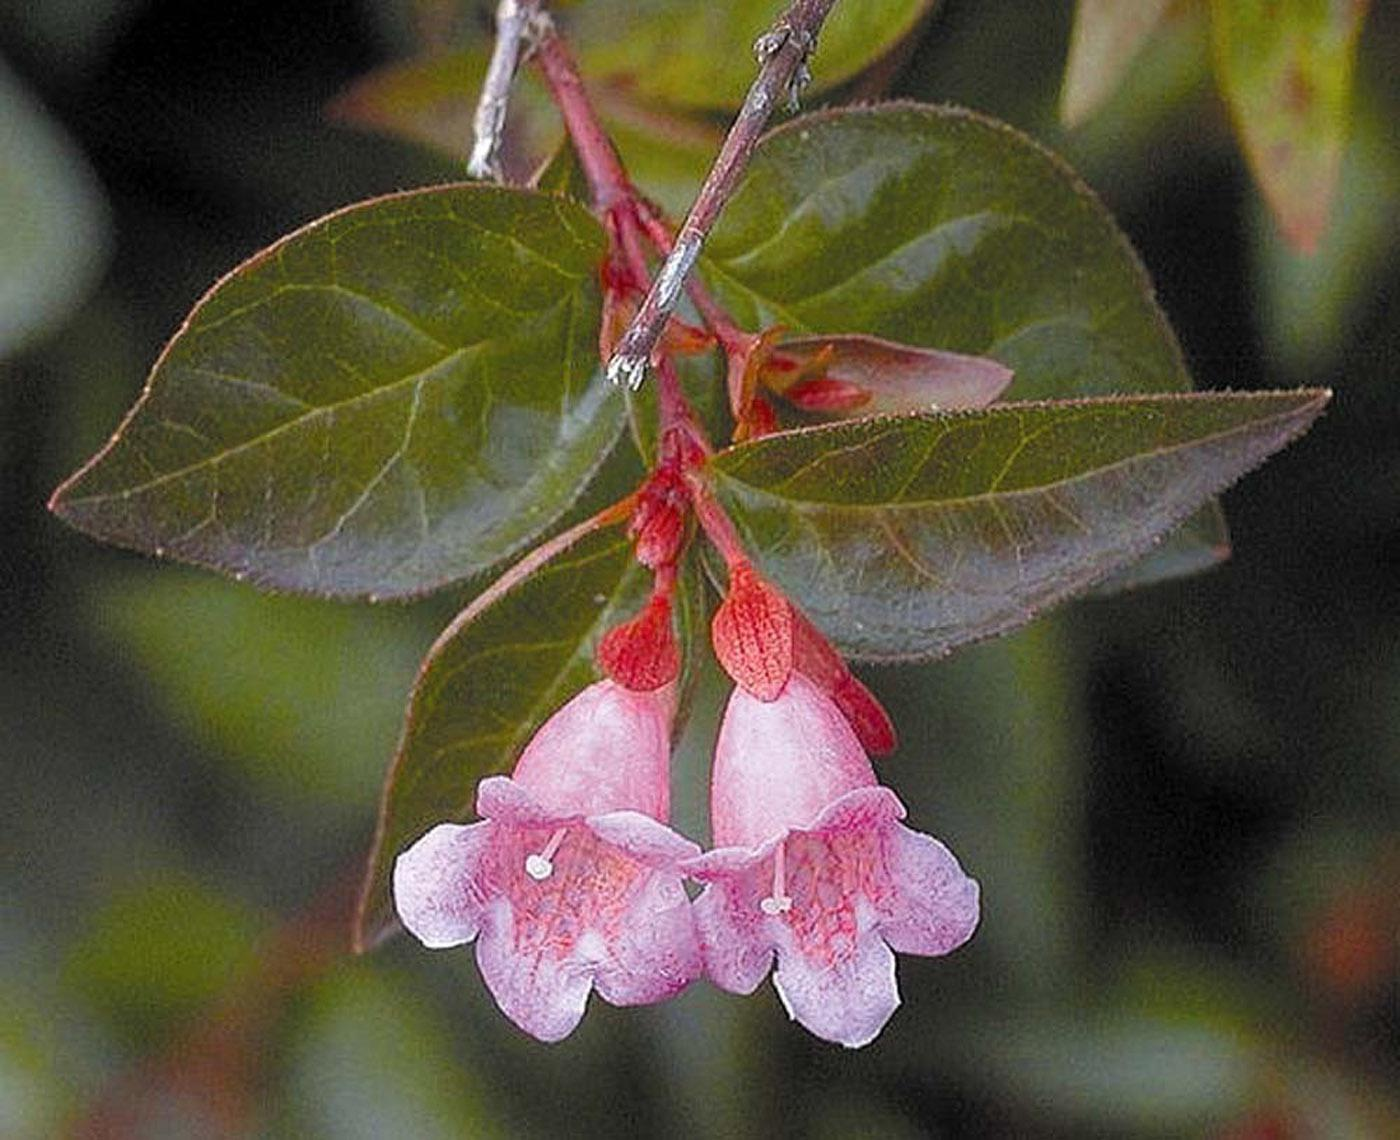 Edward Gaucher abelia is a 2003 Mississippi Medallion winner for its ability to thrive in the Hospitality State. This low-maintenance plant will yield months of blooms to delight hummingbirds, butterflies and people.